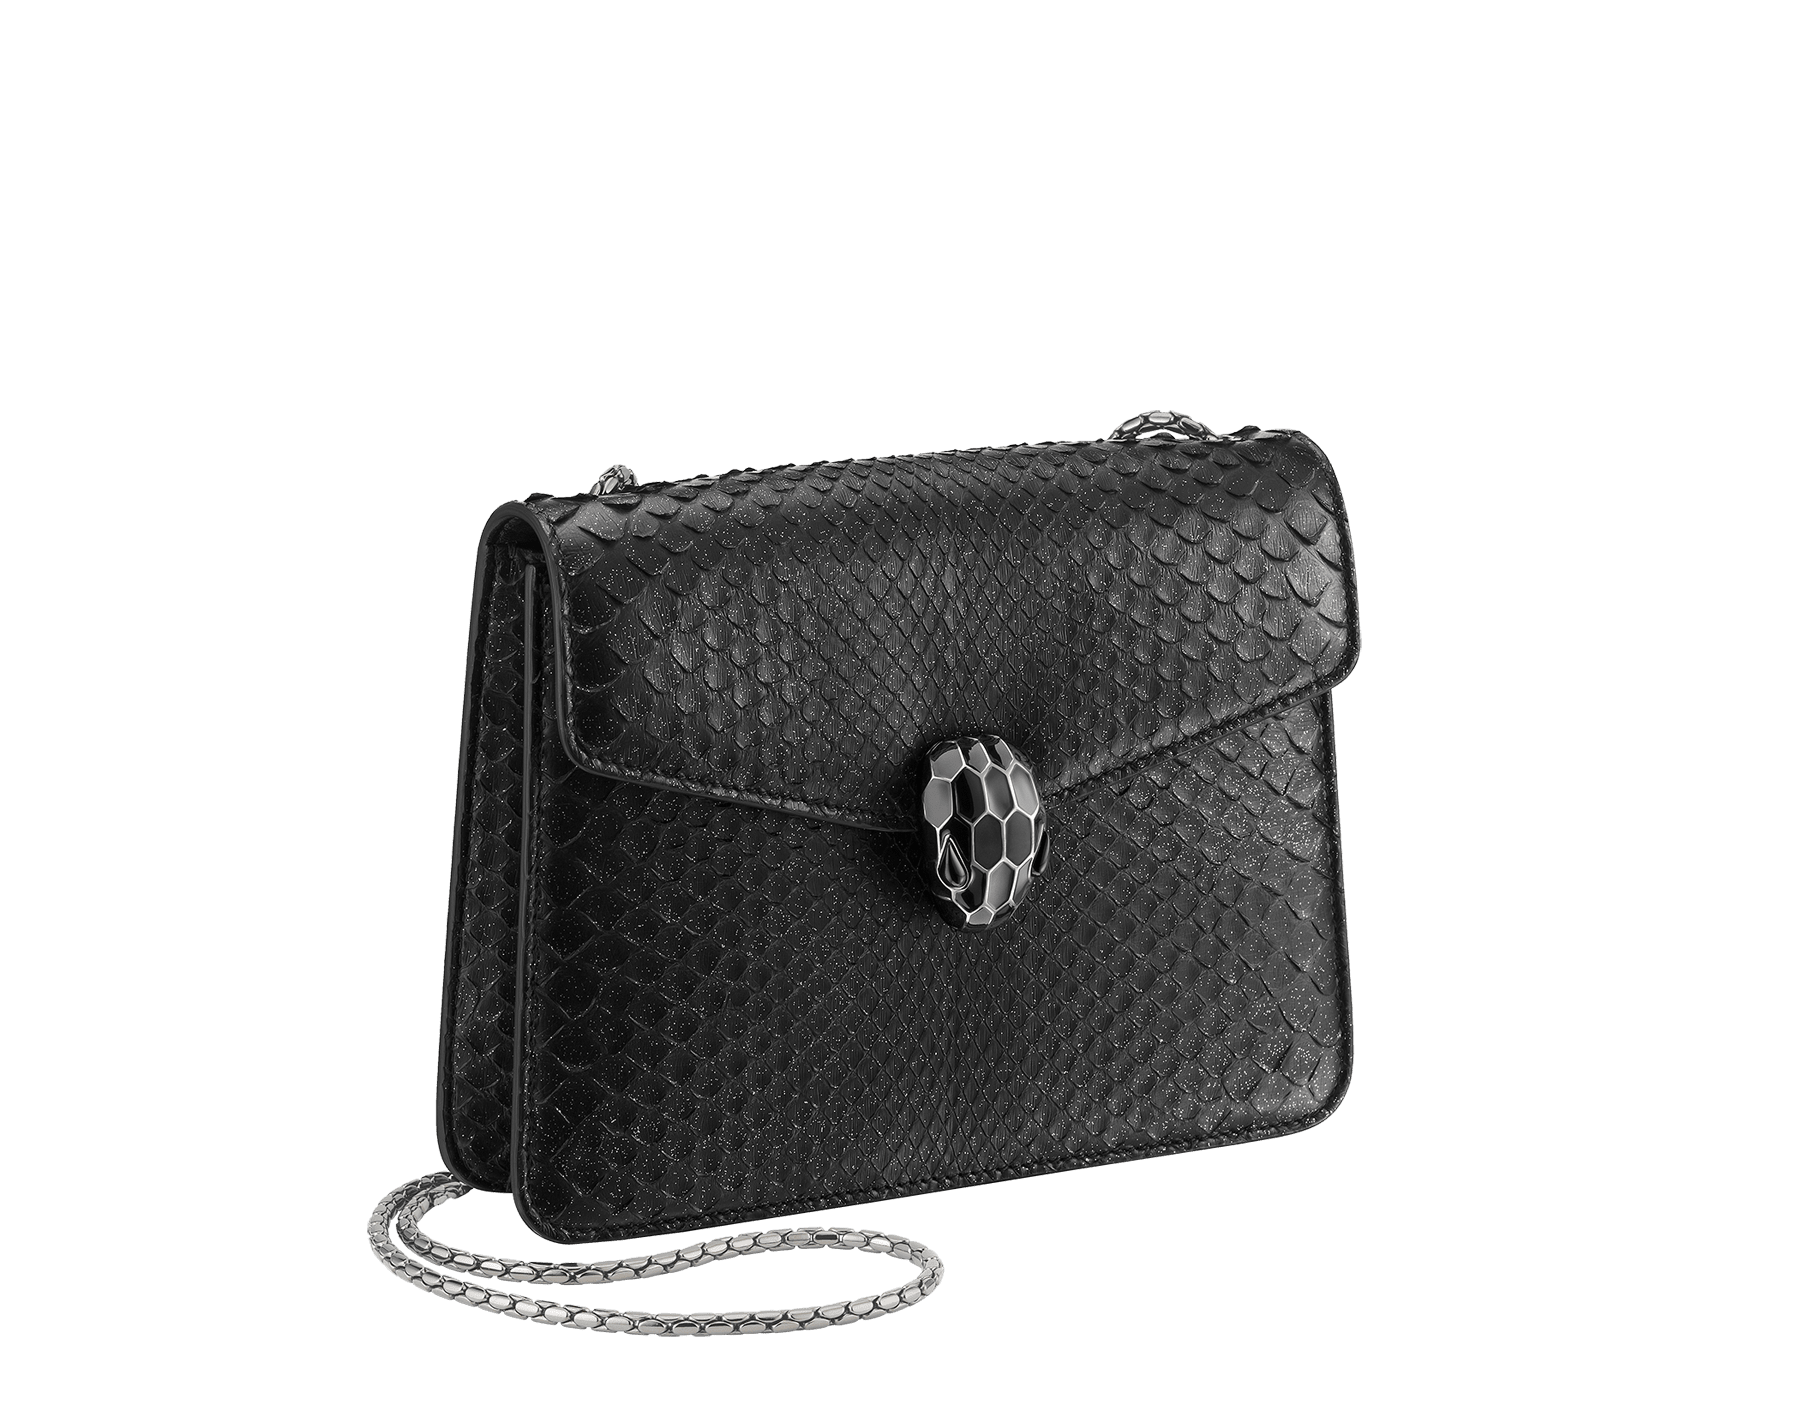 """Serpenti Forever"" crossbody bag in black Diamond Glam python skin. Iconic snake head closure in dark ruthenium plated brass enriched with black enamel and black onyx eyes. 288869 image 2"